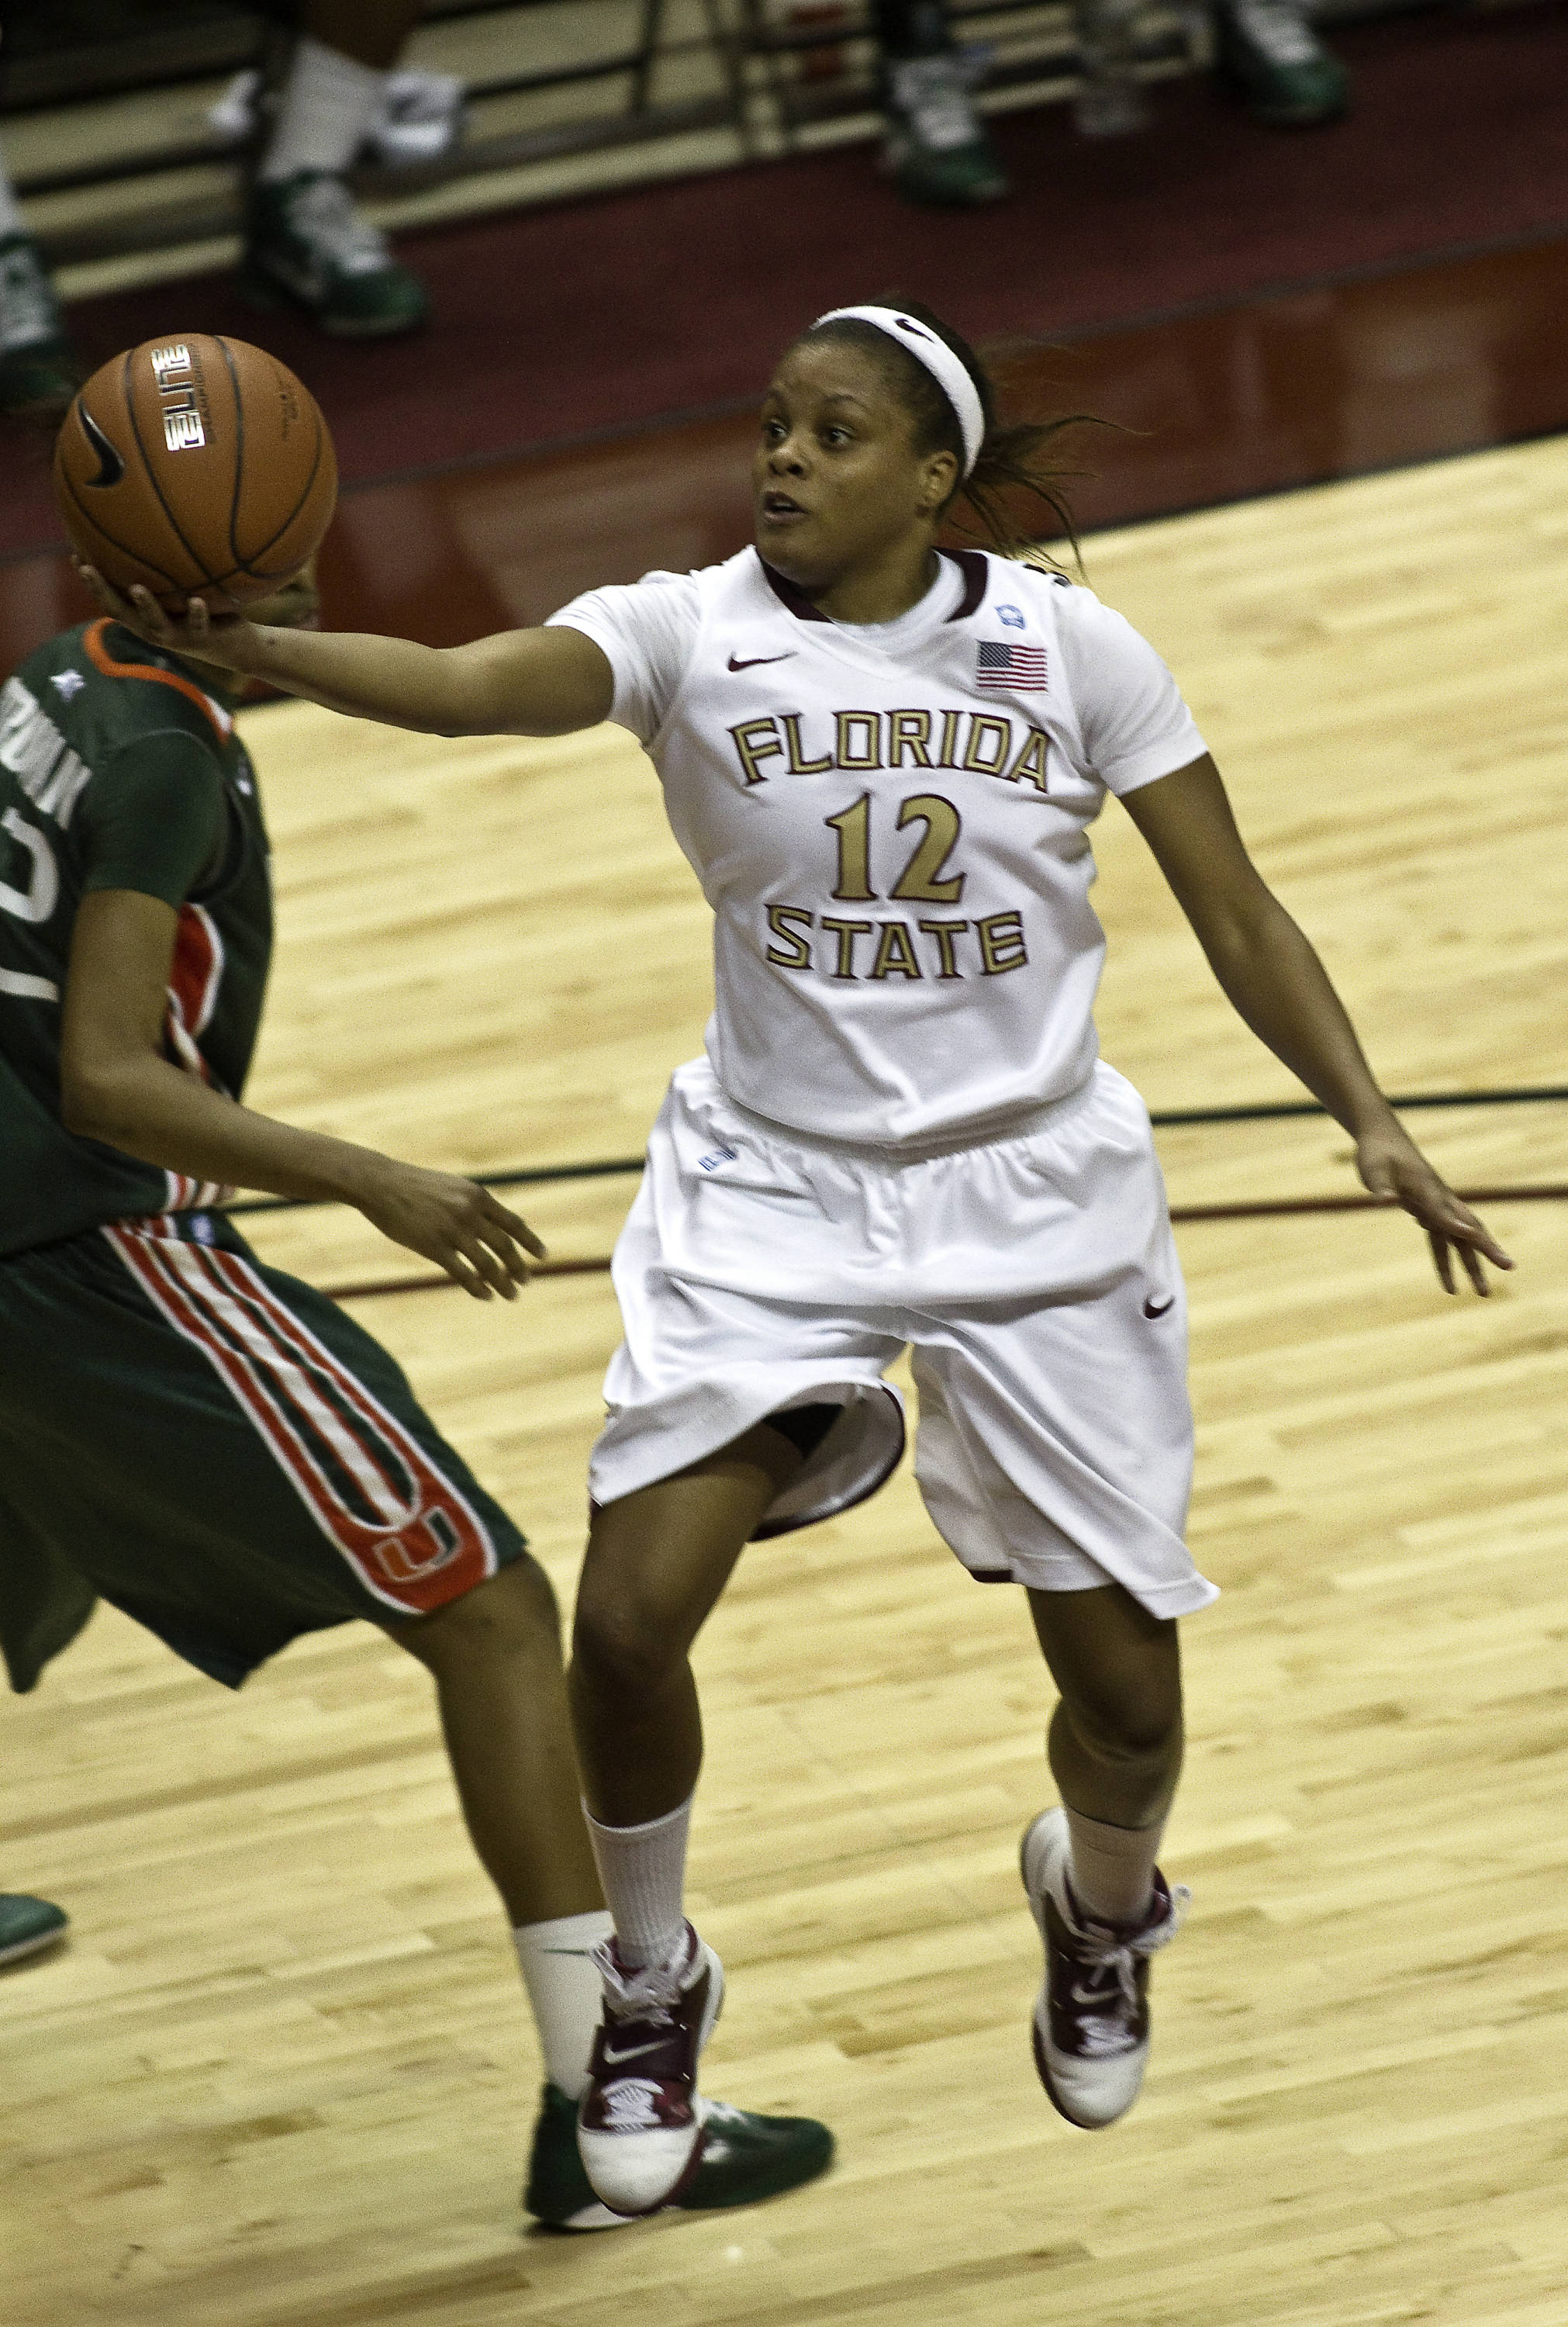 FSU vs Miami - 01/24/11 - Courtney Ward (12)